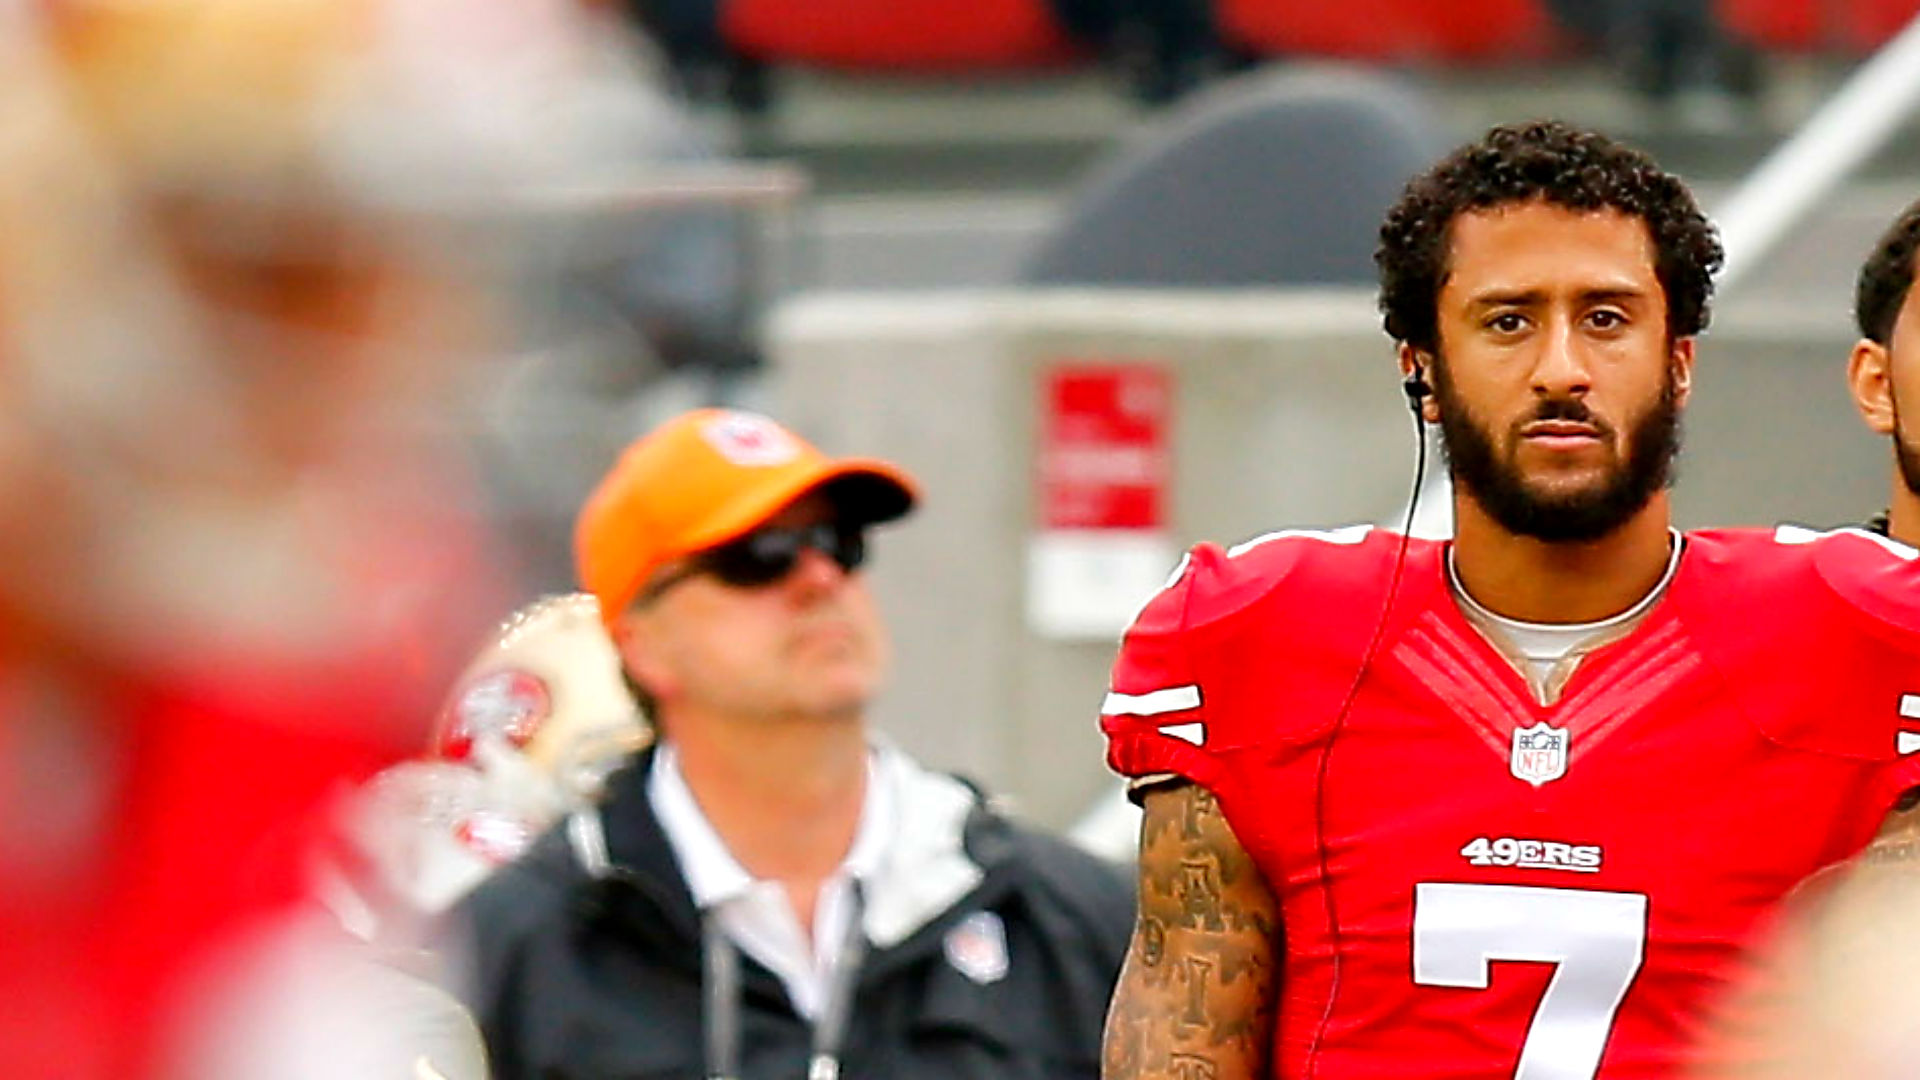 Kaepernick-colin082516-getty-ftrjpg_s9va8foojico1lh7we1tpt012